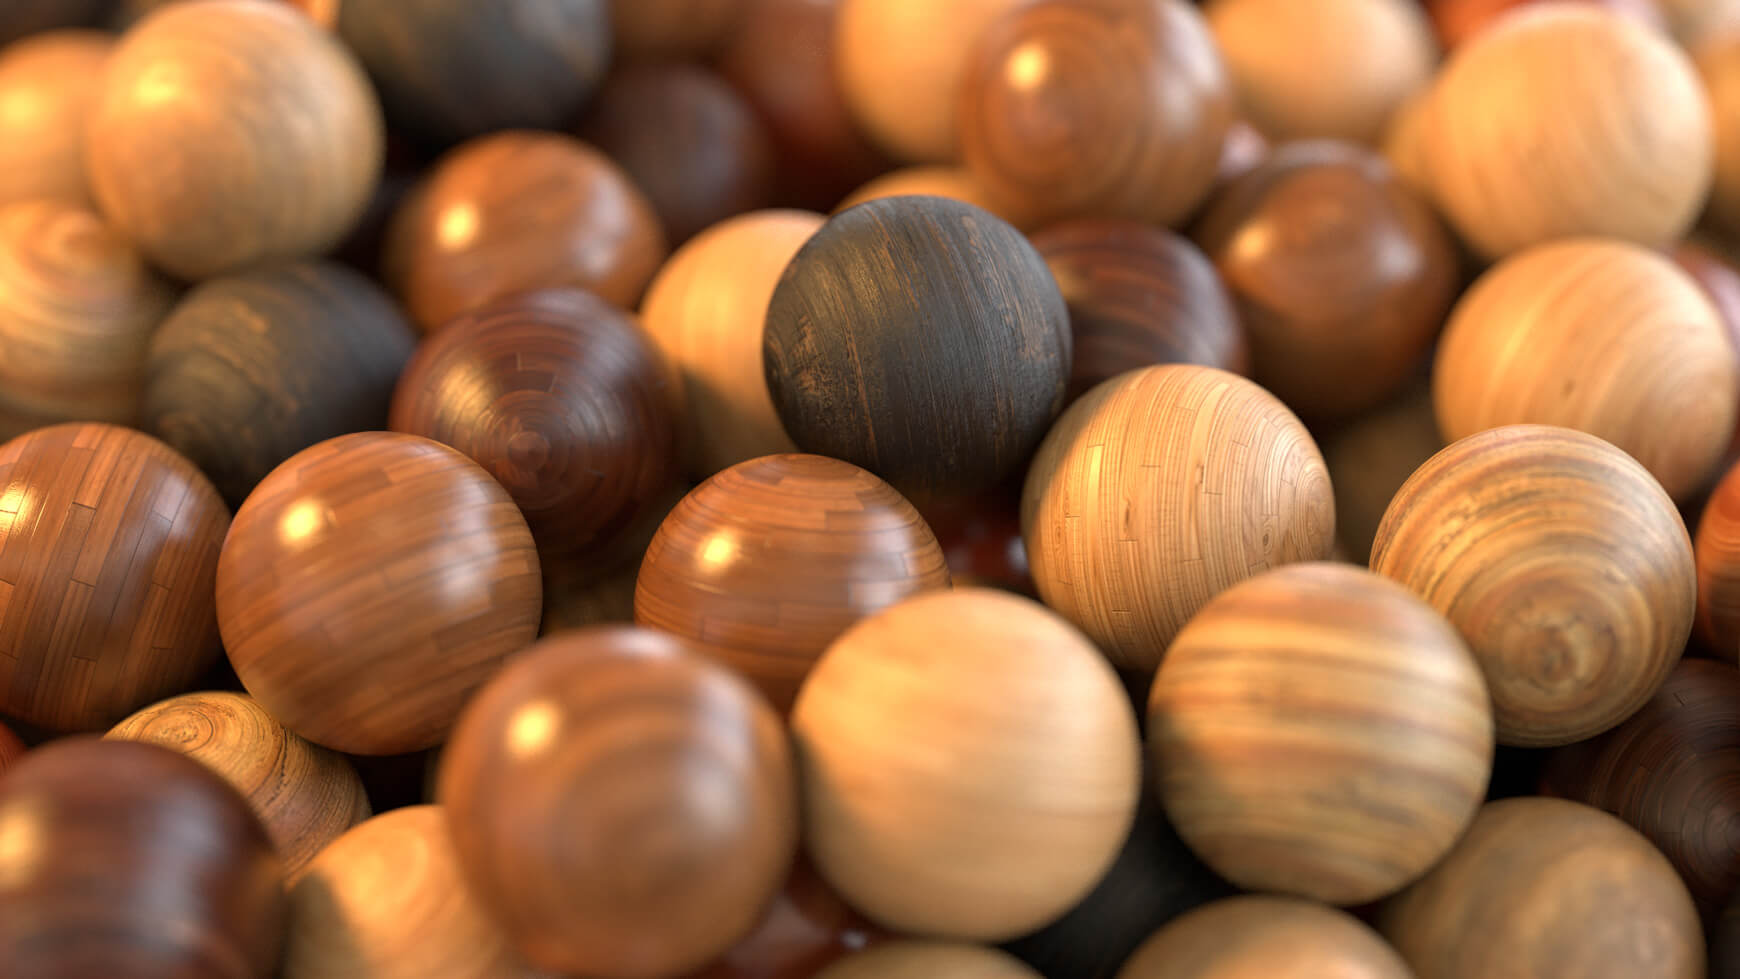 Redshift Cinema 4D Mutating Material Texture Pack Wood